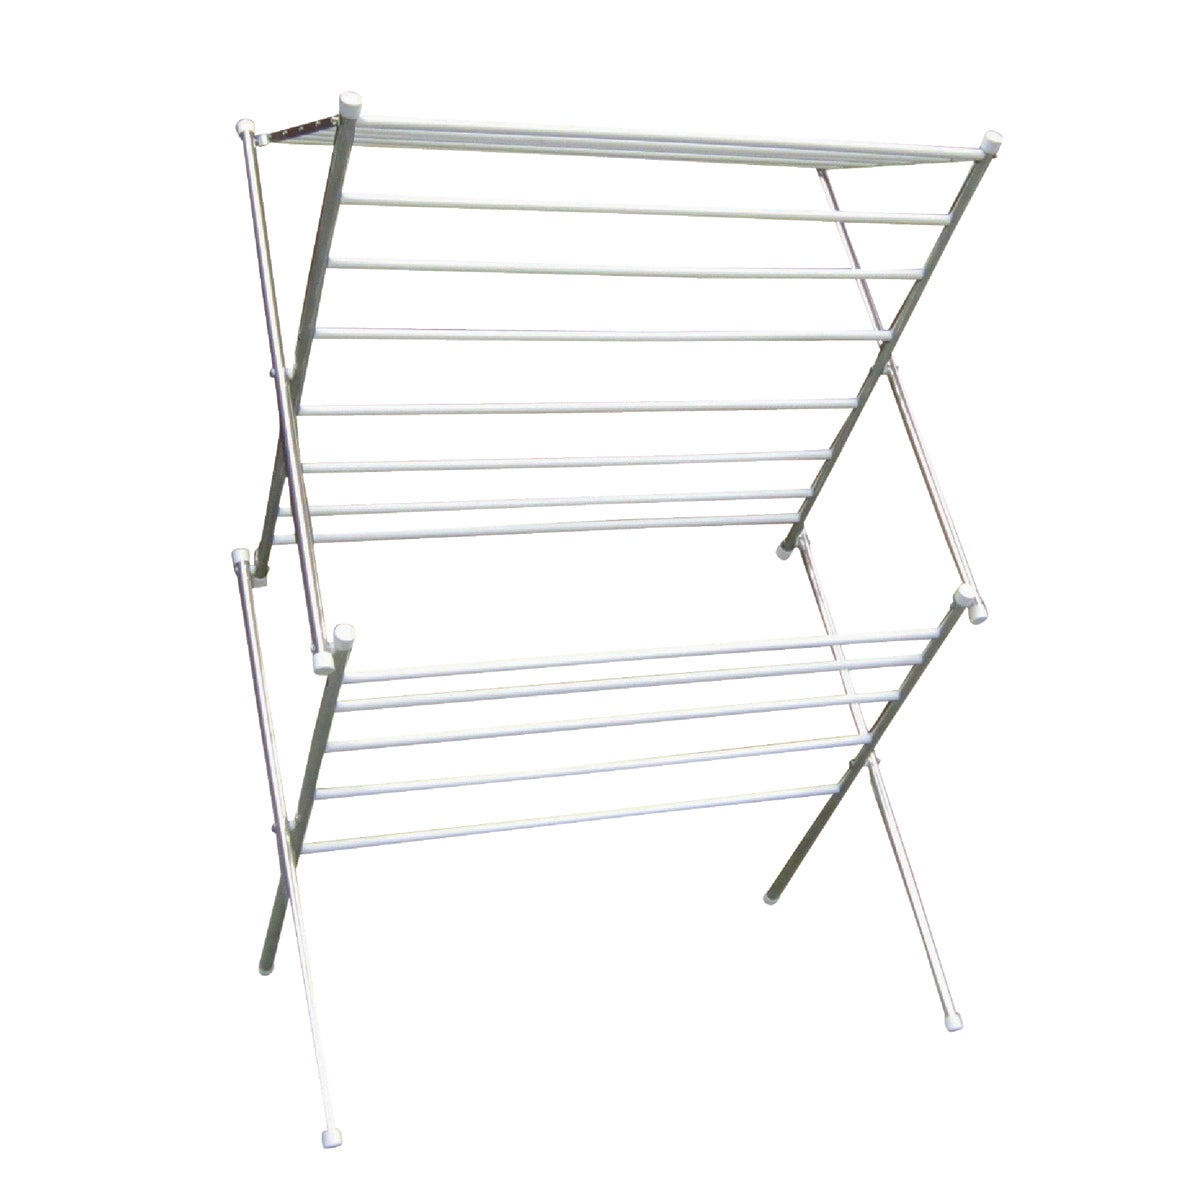 ALUMINUM CLOTHES DRYER - 43 by Madison Mill Inc